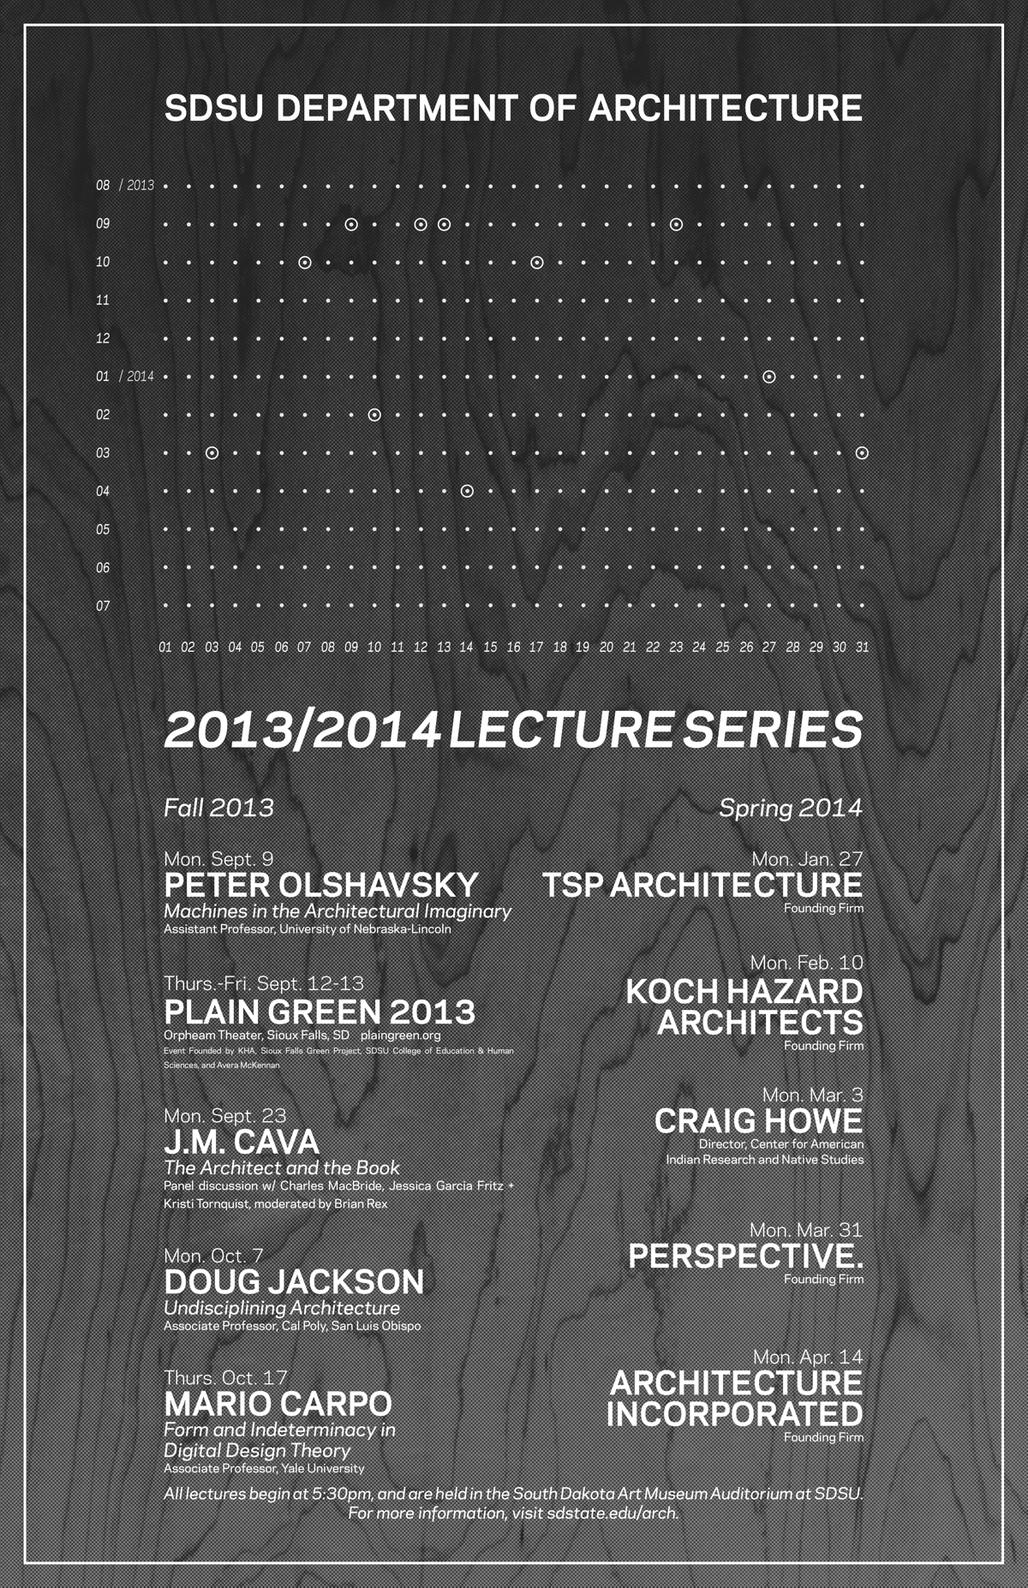 Poster for the SDSU Department of Architectures Fall 13 and Spring 14 lecture series. Image courtesy of SDSU.